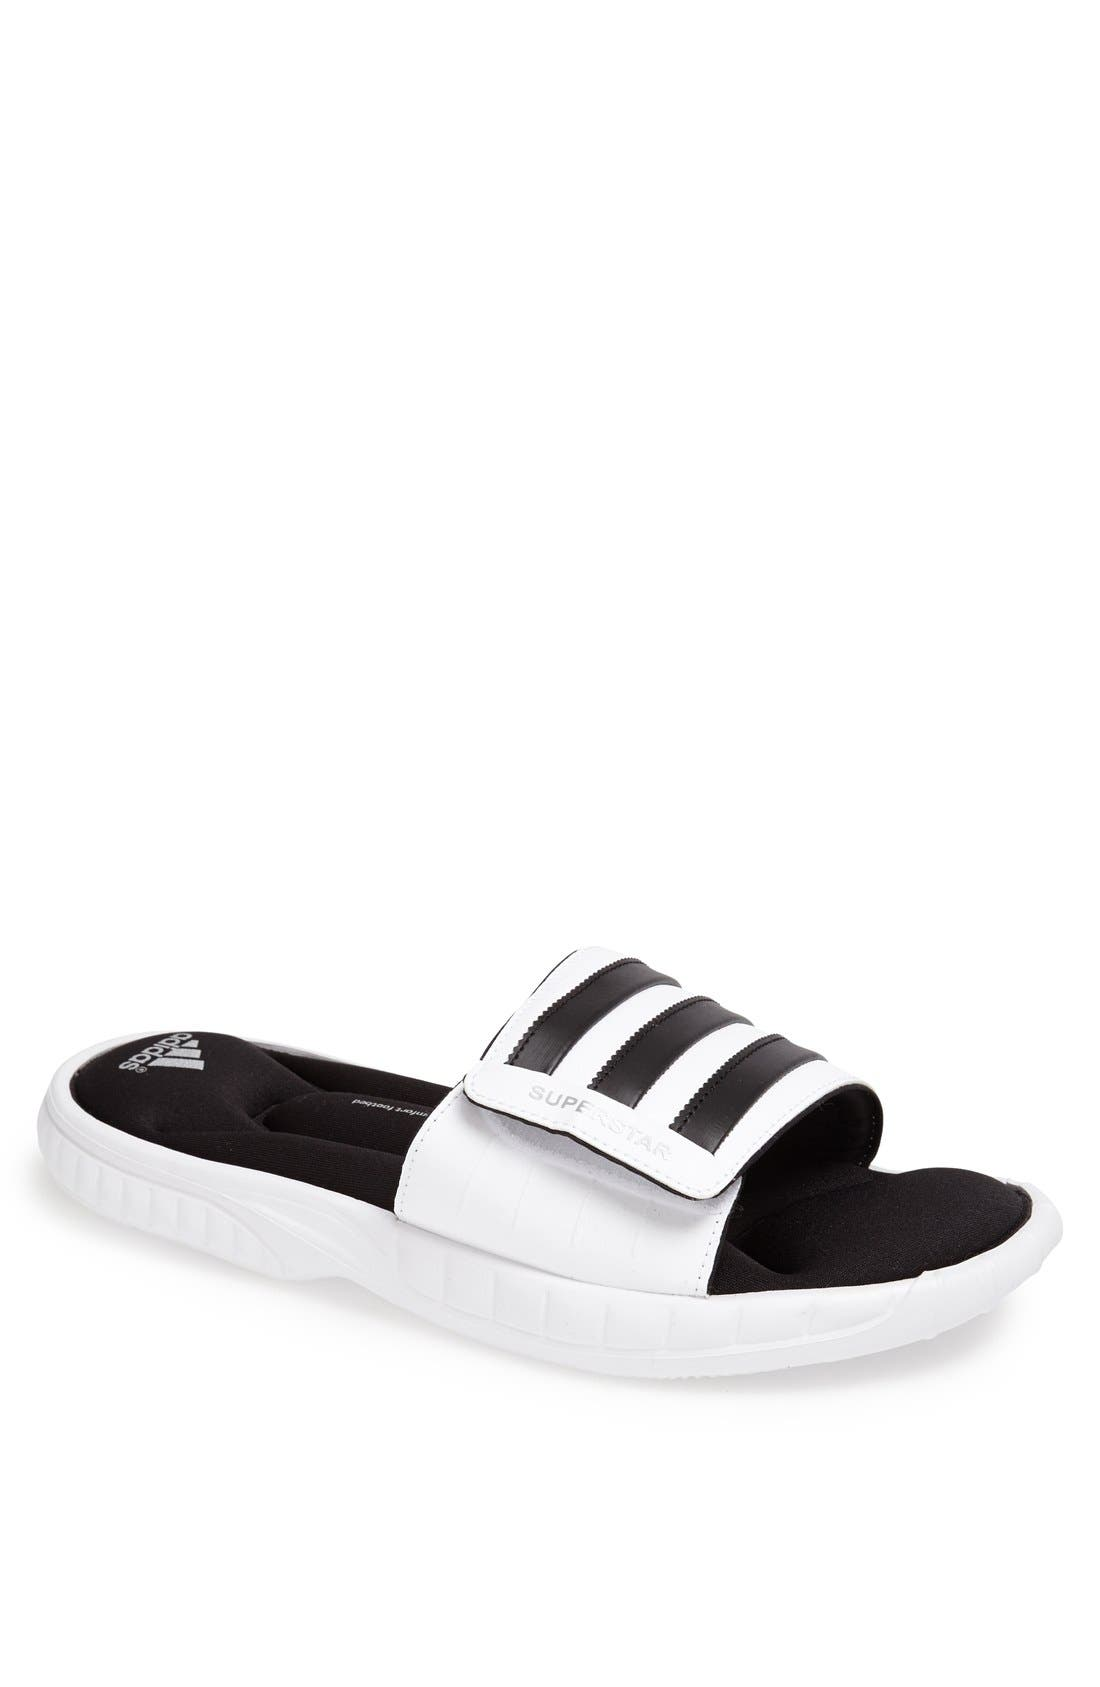 Alternate Image 1 Selected - adidas 'Superstar 3G' Sandal (Men)